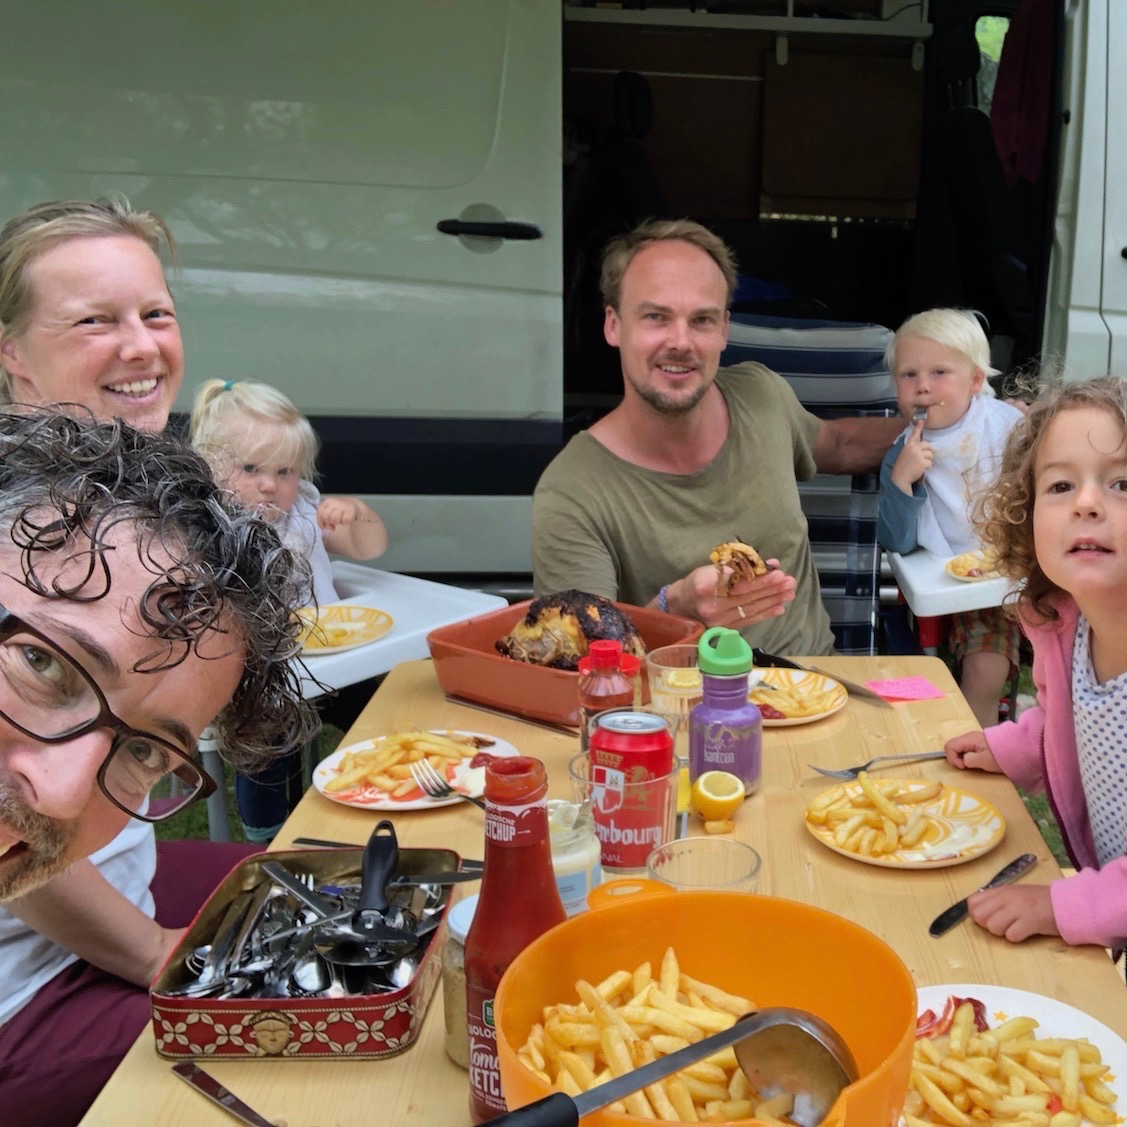 Expedition Family Happiness - Eating with friends!